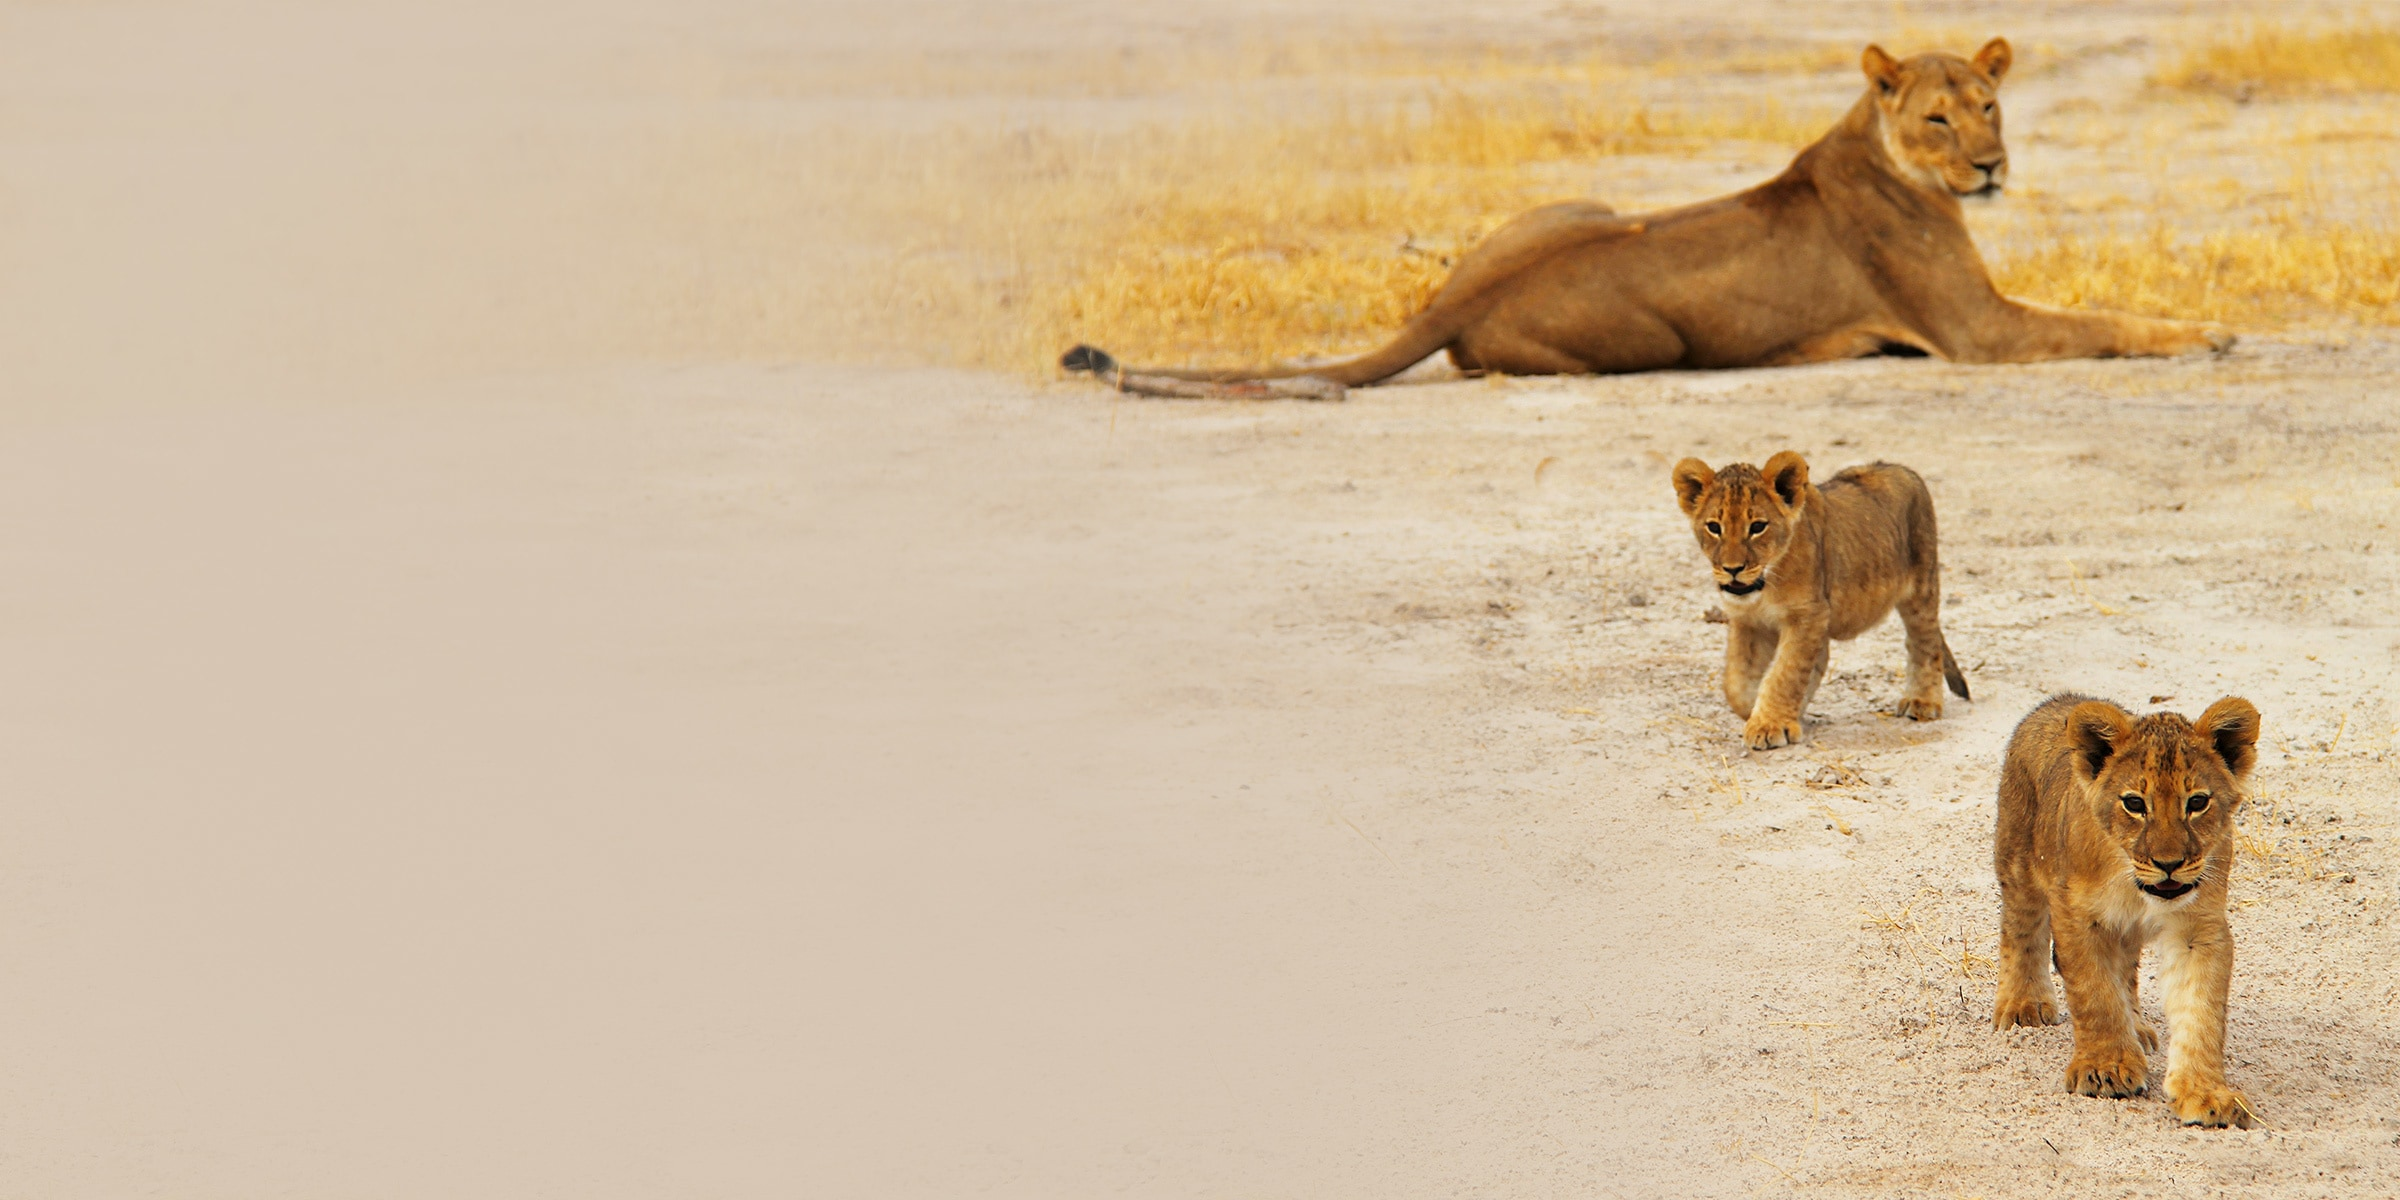 The Lion King Protect The Pride synopsis